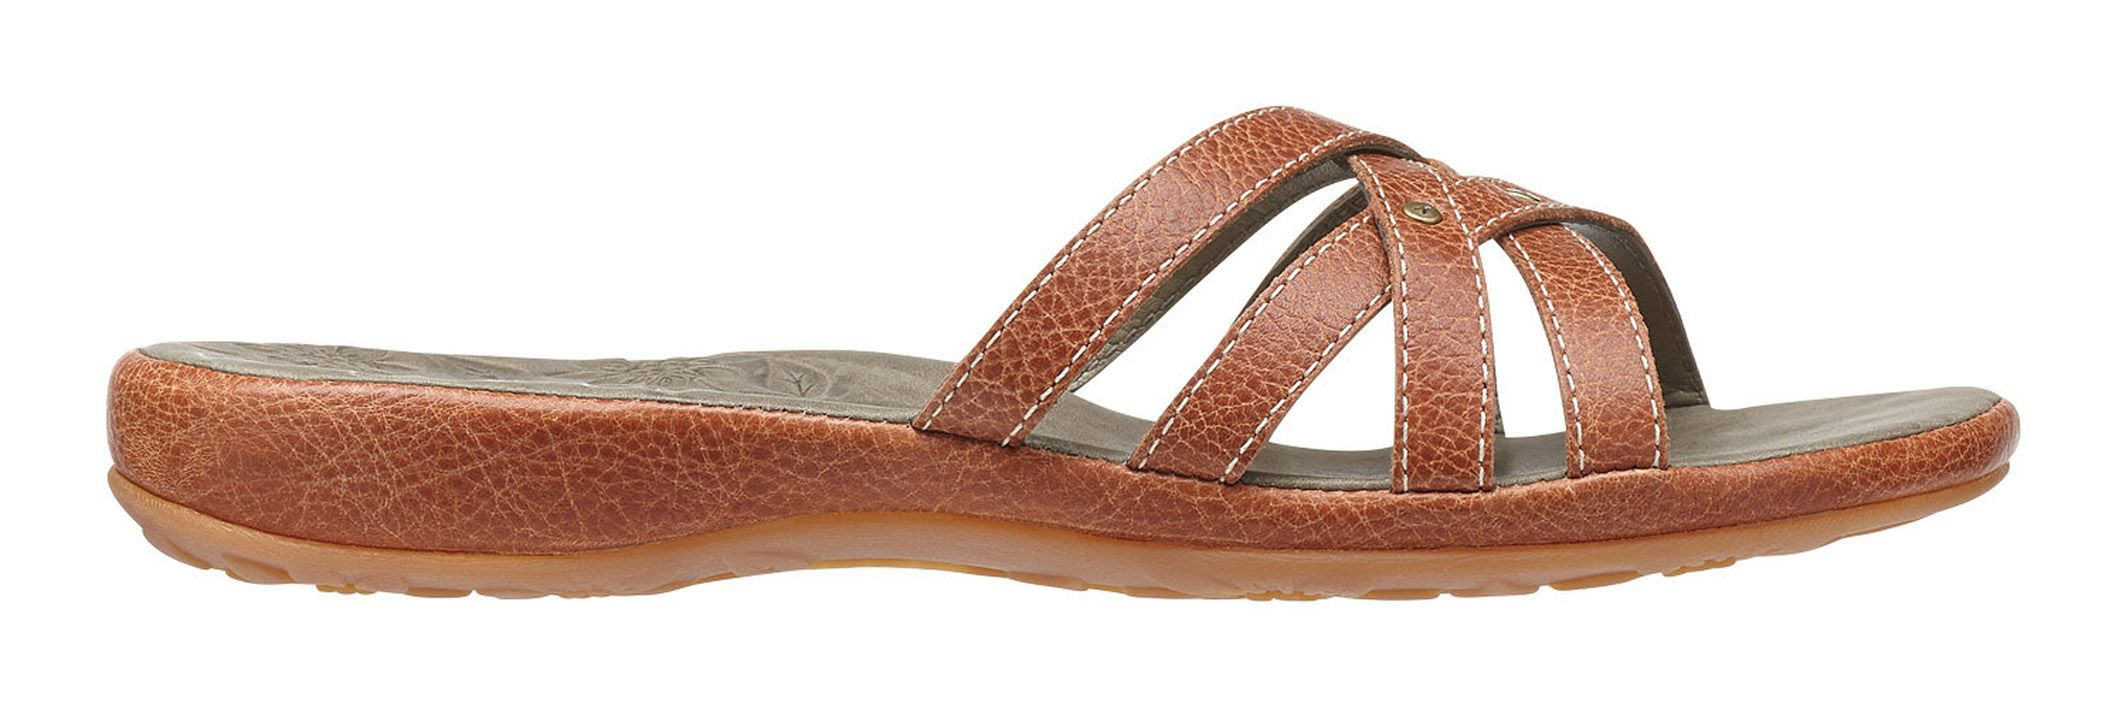 Keen City Of Palms Slide Tortoise Shell-30